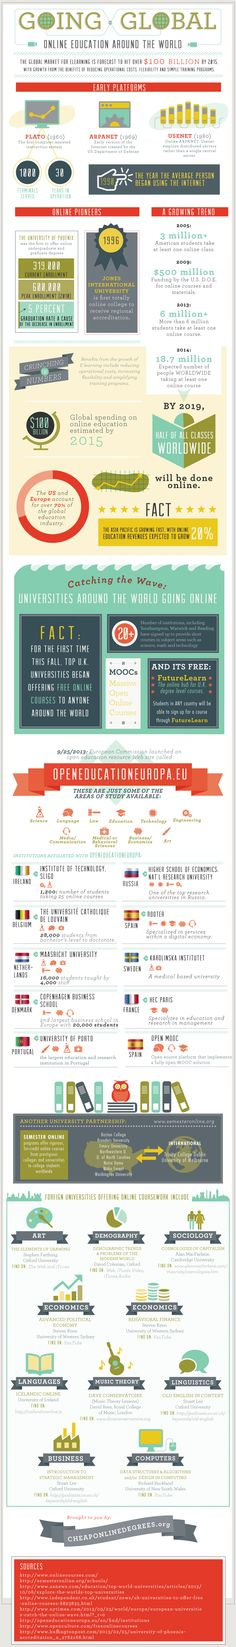 Going Global: Online Education Around the World